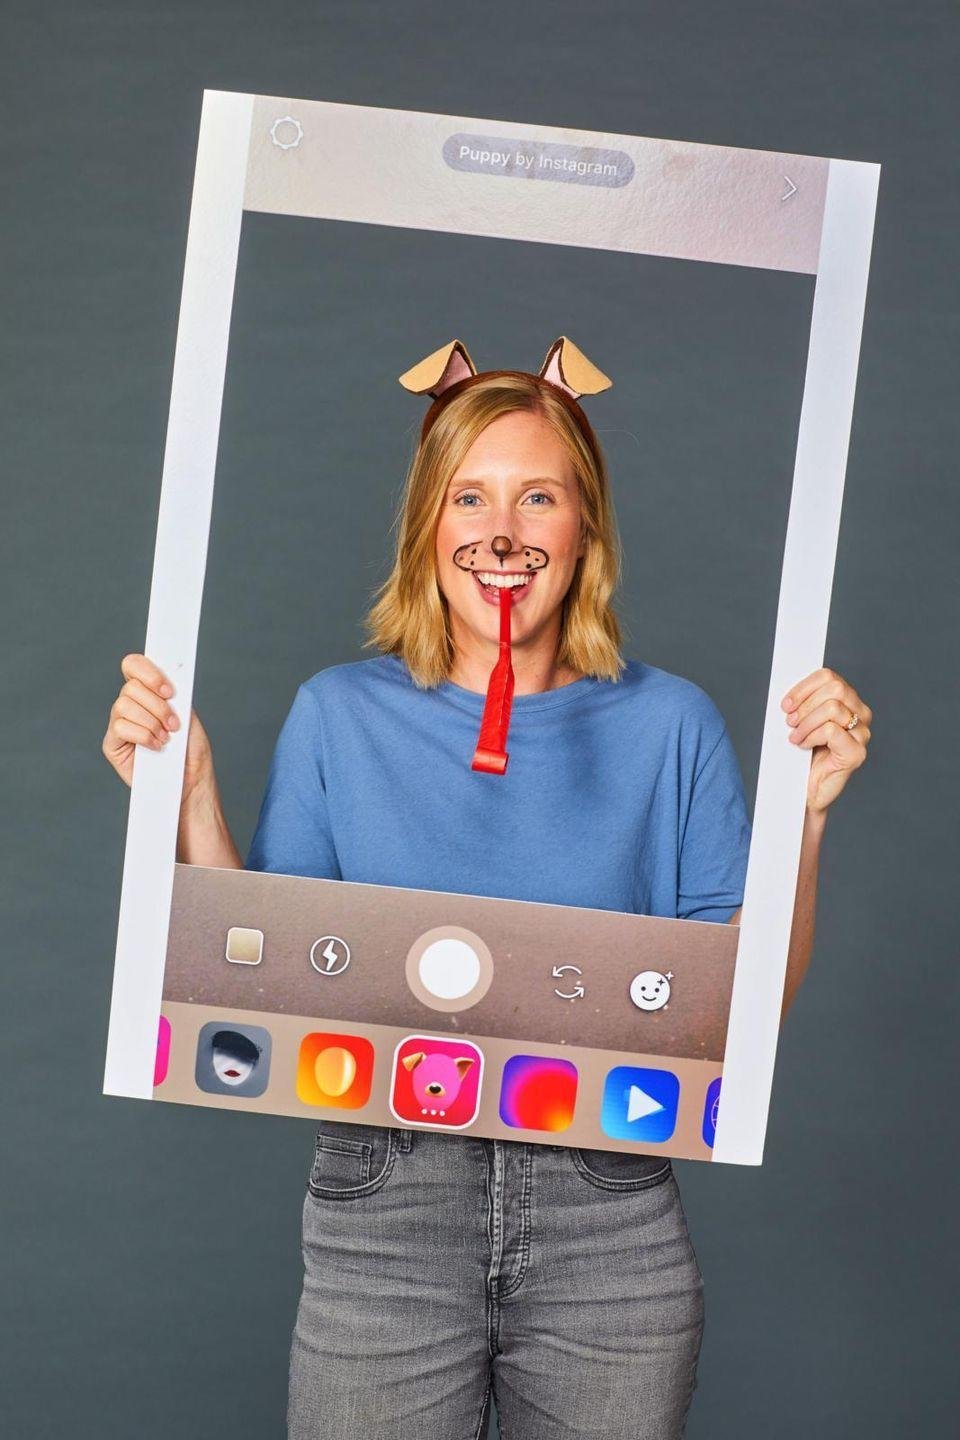 """<p>Make your favorite Instagram filter come to life with this last-minute costume. Start by pulling up Instagram stories on your phone and selecting the dog filter. Then, point the phone at a blank surface like a wall, and take a screenshot. Print the screenshot on a thick board and cut out the middle to fit your face. Finish it off by adding makeup and accessories to mirror the filter's. </p><p><a class=""""link rapid-noclick-resp"""" href=""""https://www.amazon.com/Animal-Brown-Headband-Costume-Accessory/dp/B07HHBQQMP/?tag=syn-yahoo-20&ascsubtag=%5Bartid%7C10055.g.2750%5Bsrc%7Cyahoo-us"""" rel=""""nofollow noopener"""" target=""""_blank"""" data-ylk=""""slk:SHOP DOG EARS"""">SHOP DOG EARS </a></p><p><strong>RELATED</strong>: <a href=""""https://www.goodhousekeeping.com/holidays/halloween-ideas/g3863/snapchat-filter-makeup-halloween/"""" rel=""""nofollow noopener"""" target=""""_blank"""" data-ylk=""""slk:Brilliant Filter Costumes That Win Halloween"""" class=""""link rapid-noclick-resp"""">Brilliant Filter Costumes That Win Halloween</a></p>"""